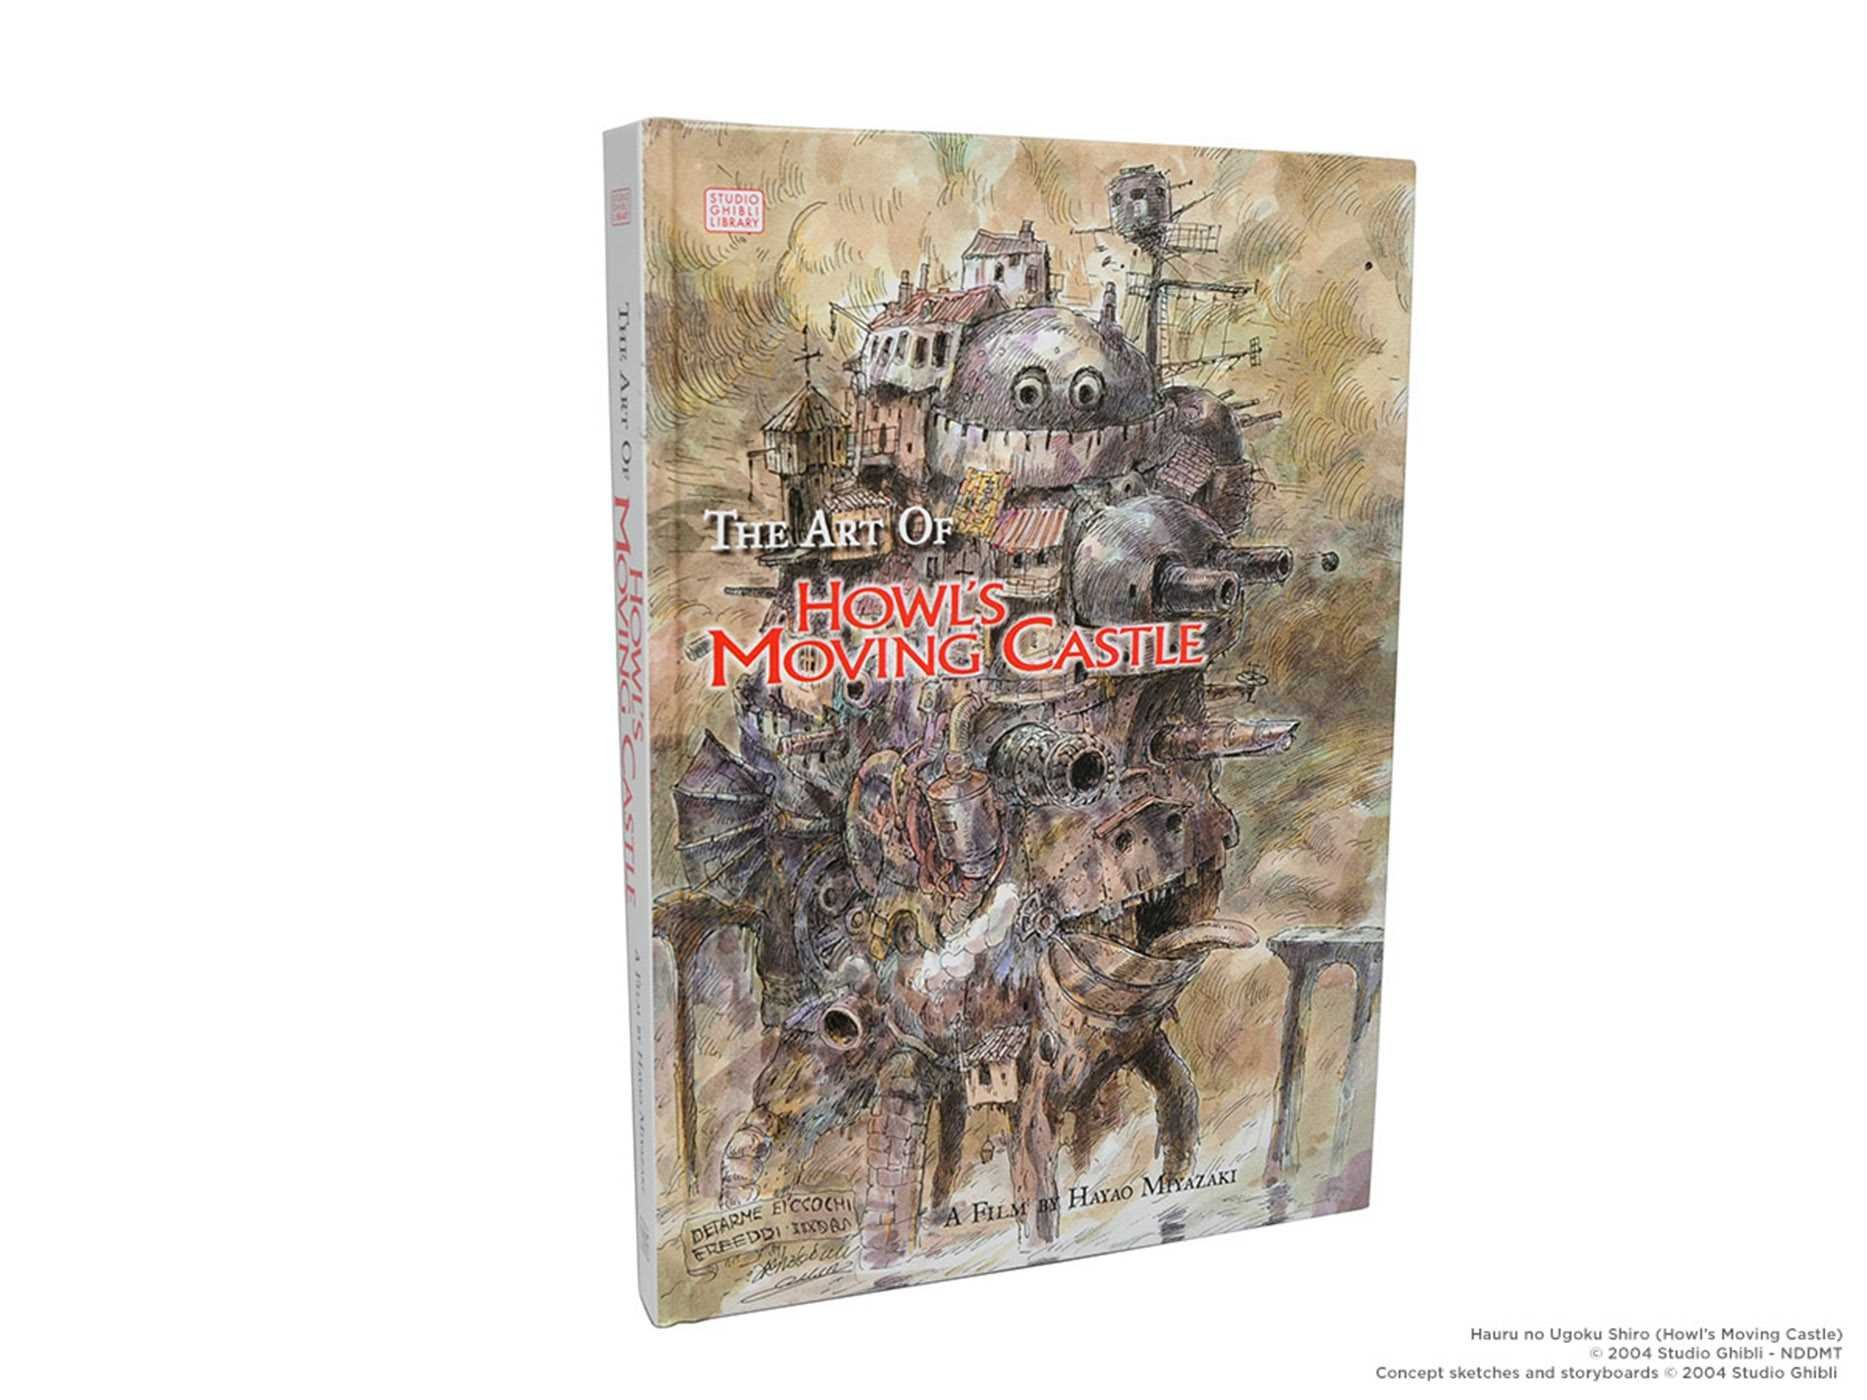 The art of howls moving castle livros na amazon brasil 0782009230434 fandeluxe Choice Image